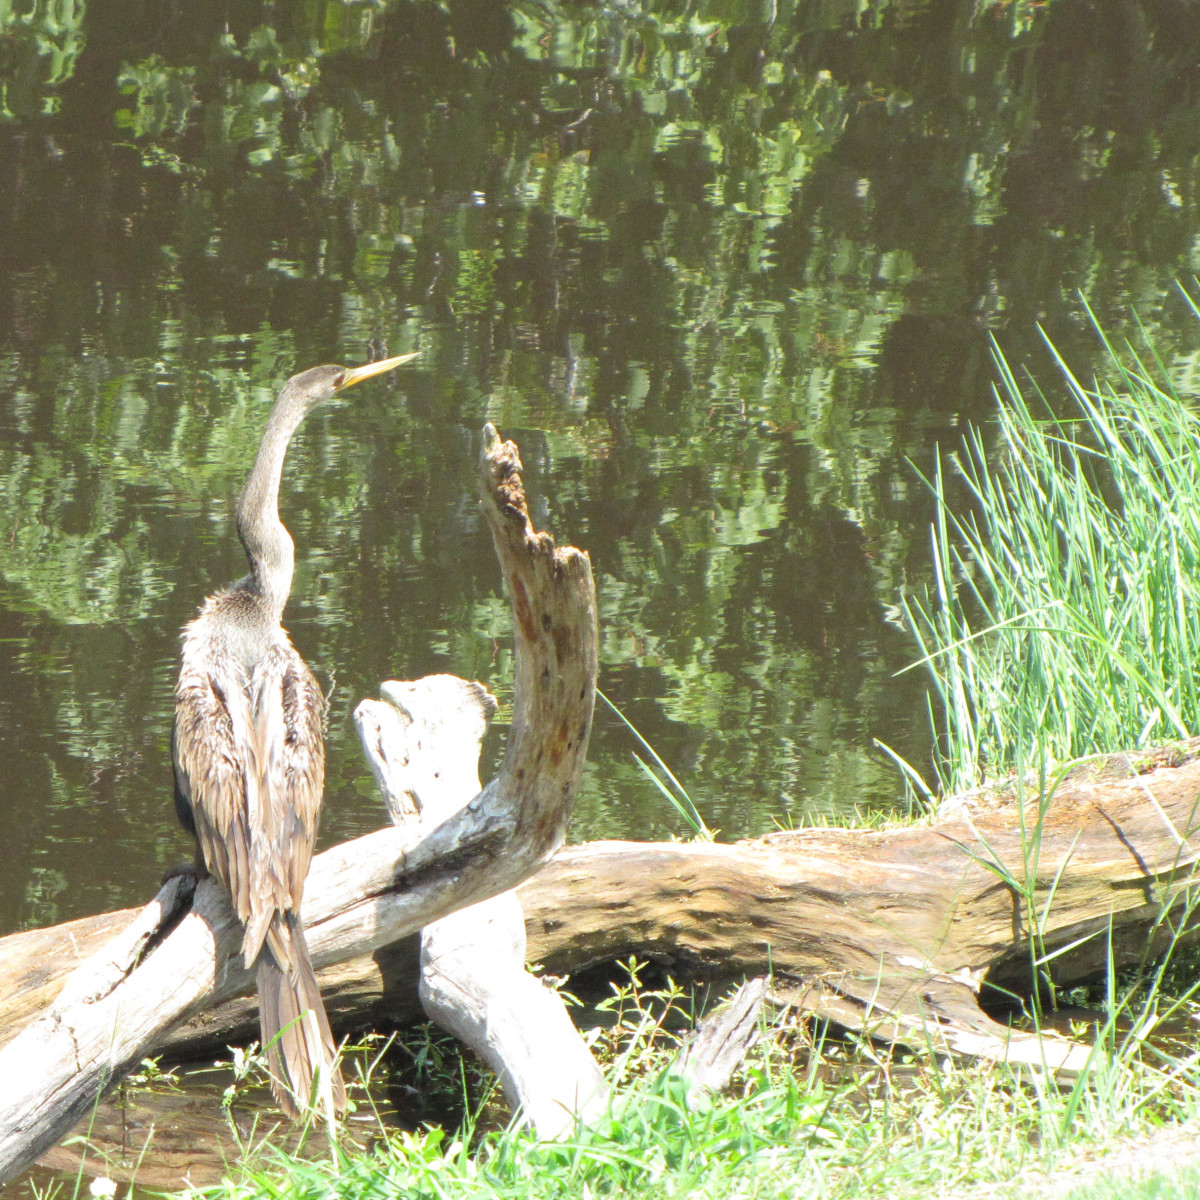 Sometimes the anhingas are more brown and not as black.